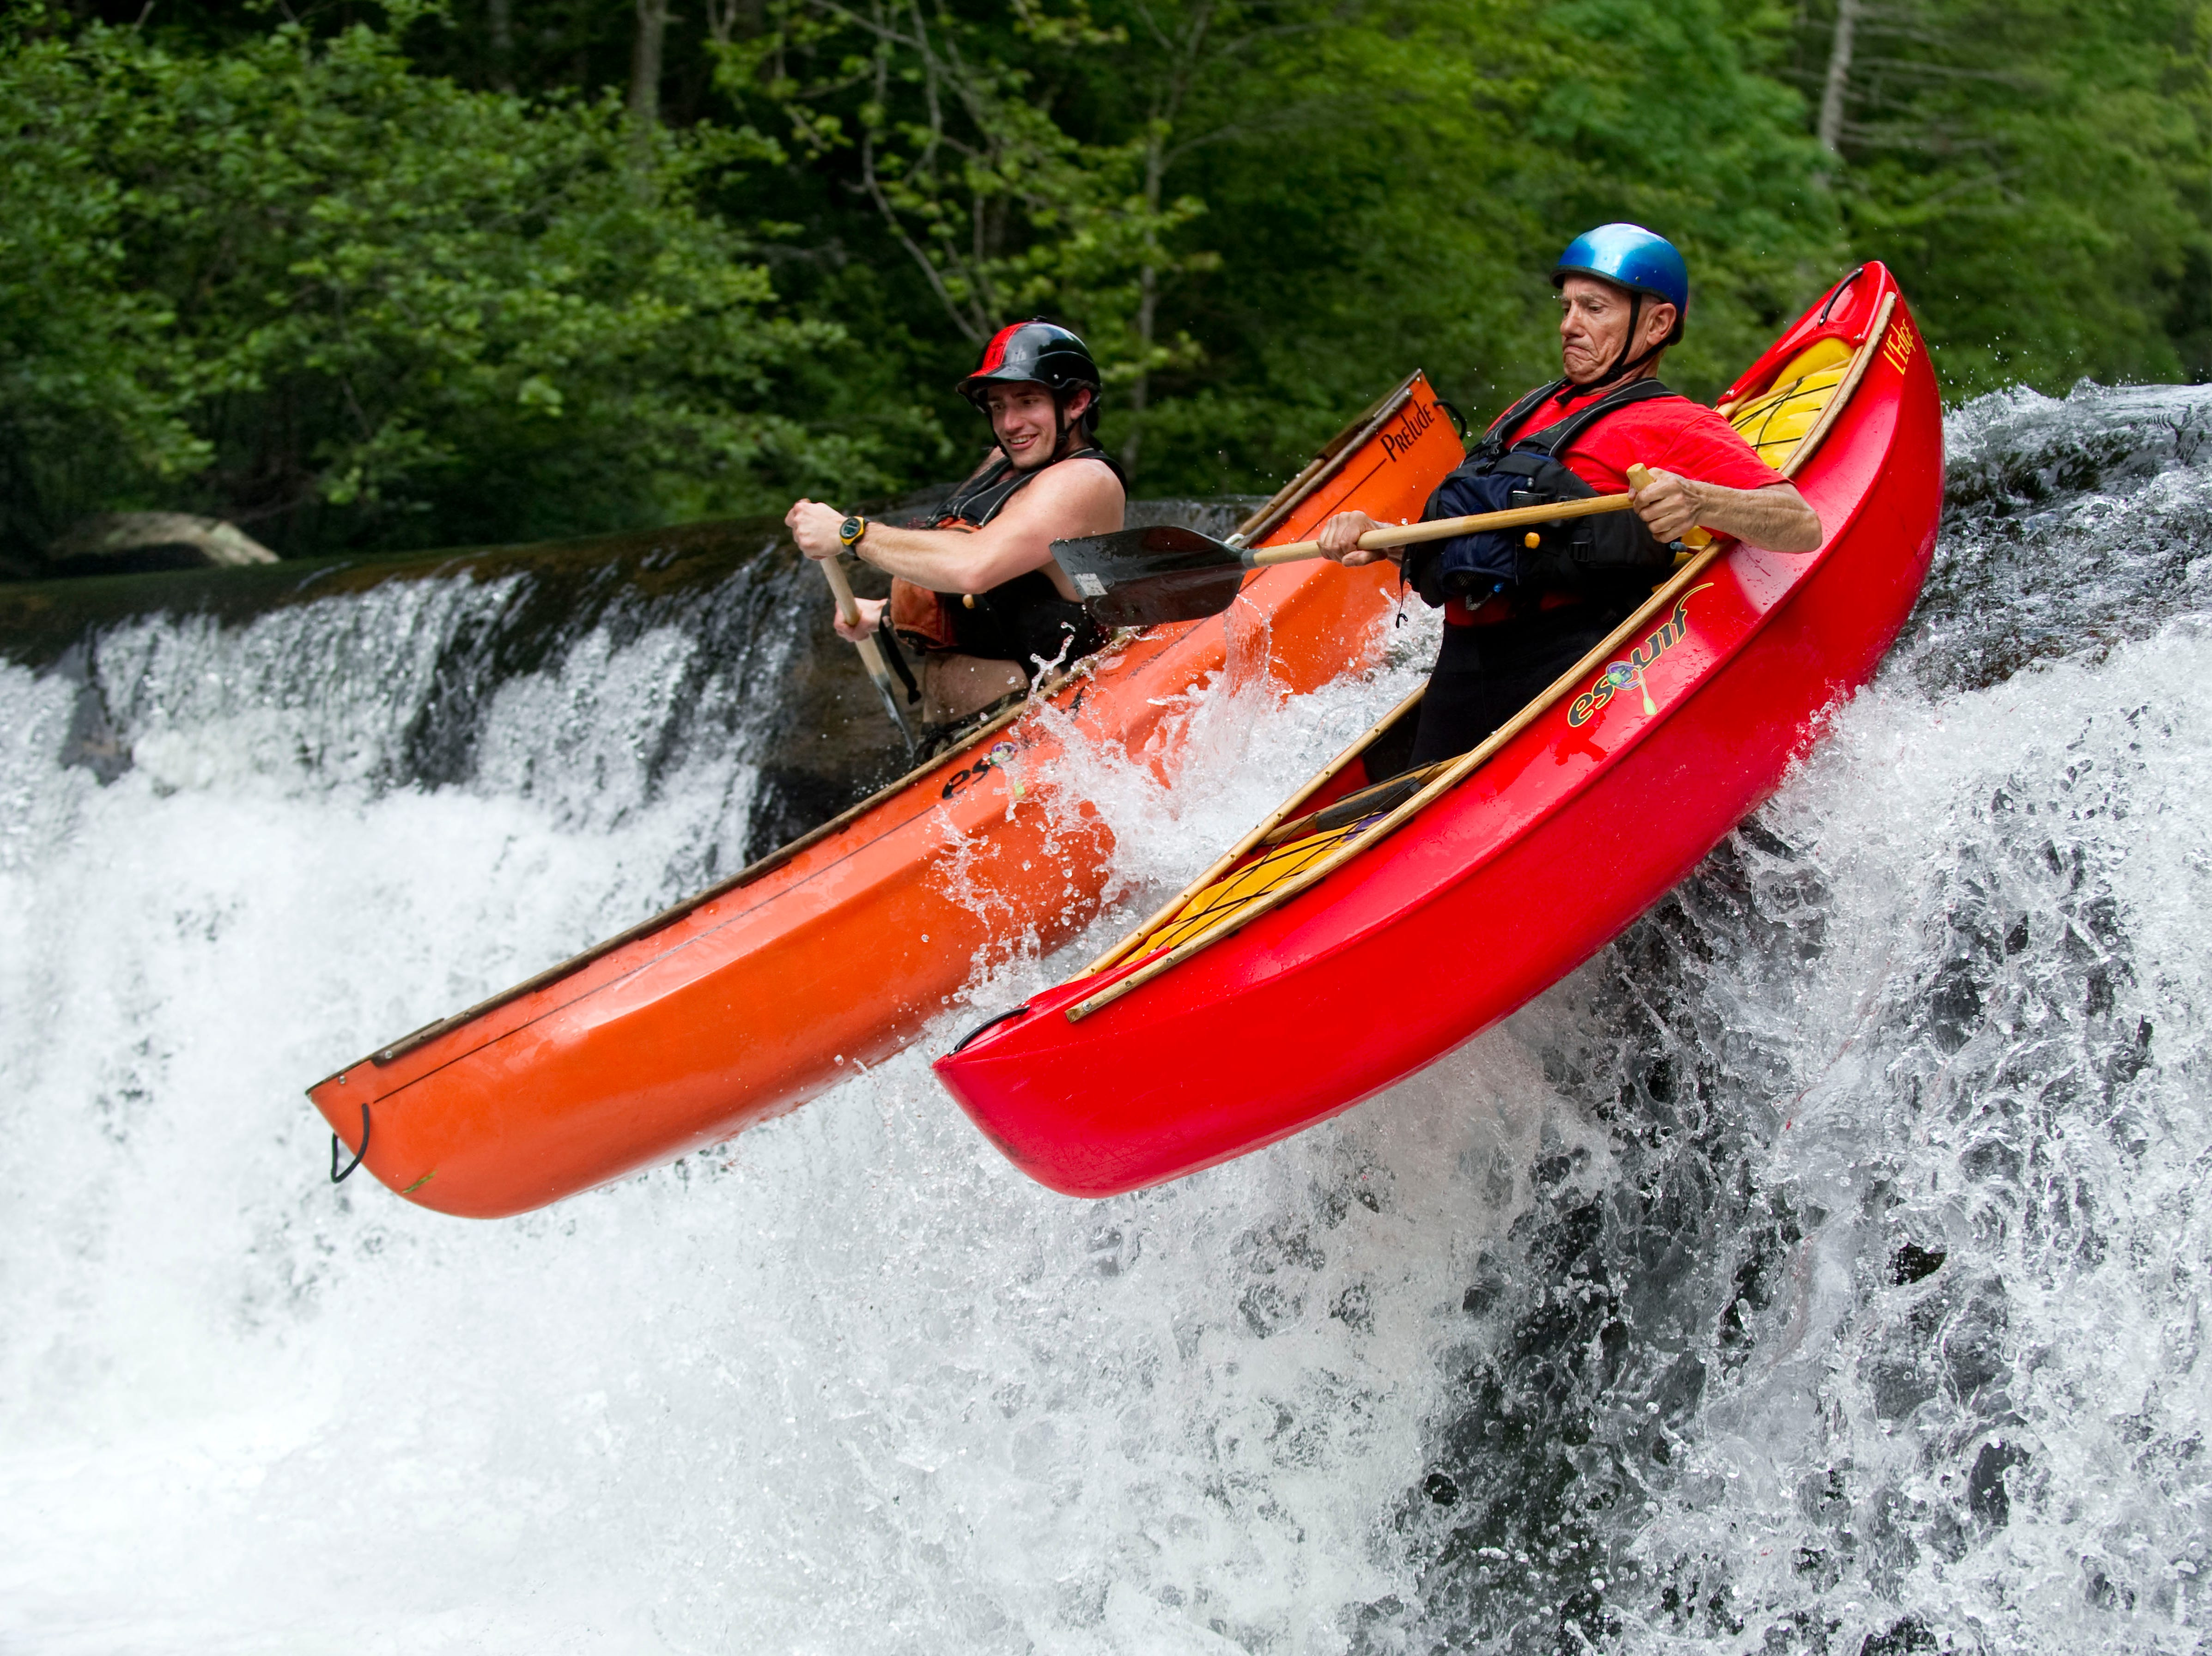 Charlie Tombras, CEO of The Tombras Group, right, and his son Dooley Tombras canoe down an 8 ft. high waterfall on the Tellico River on Sunday, June 10, 2012.